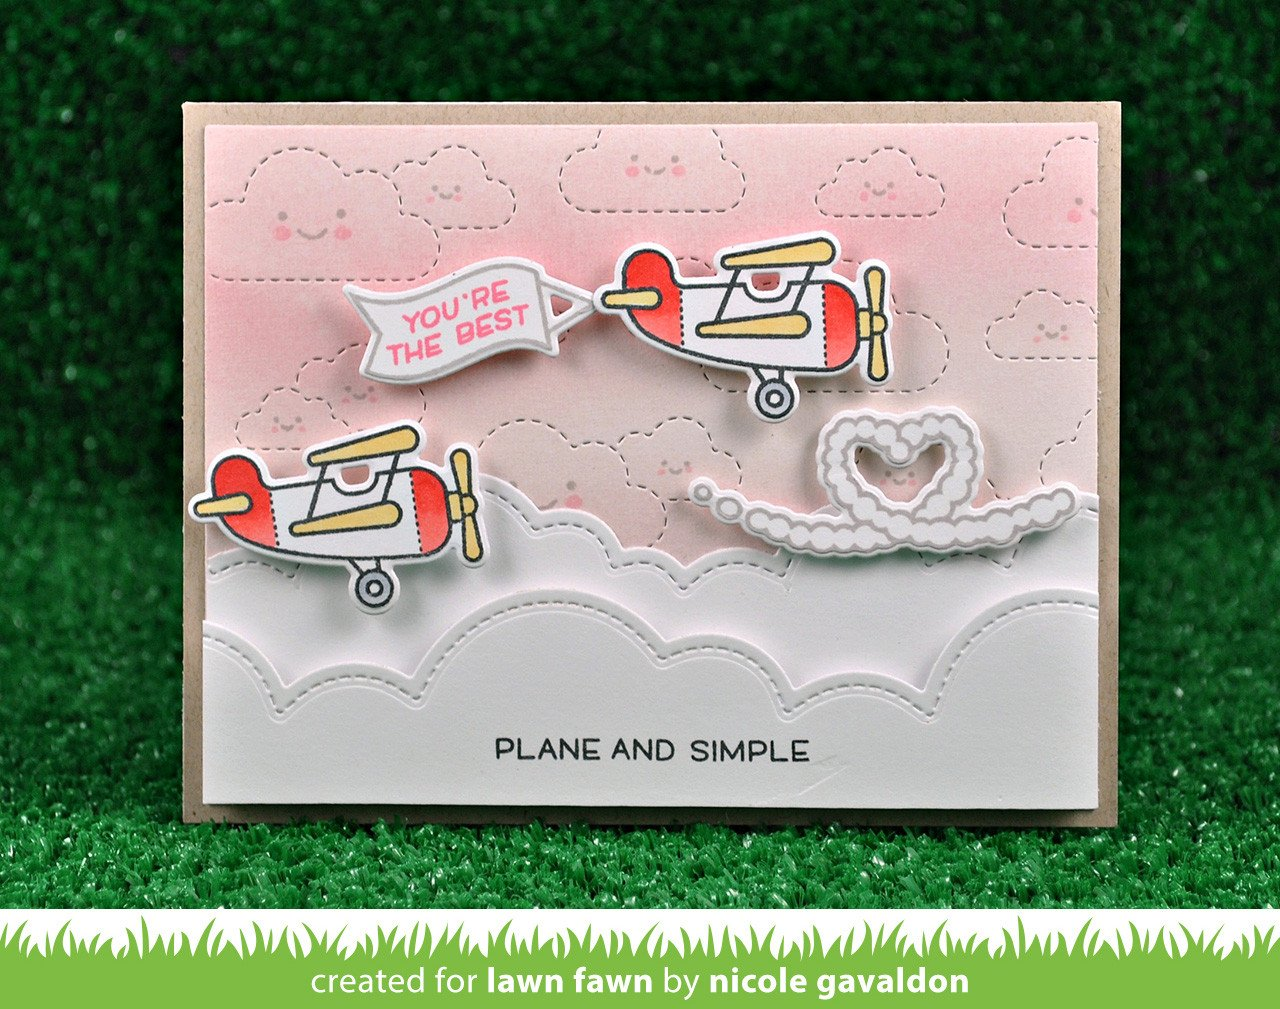 plane and simple